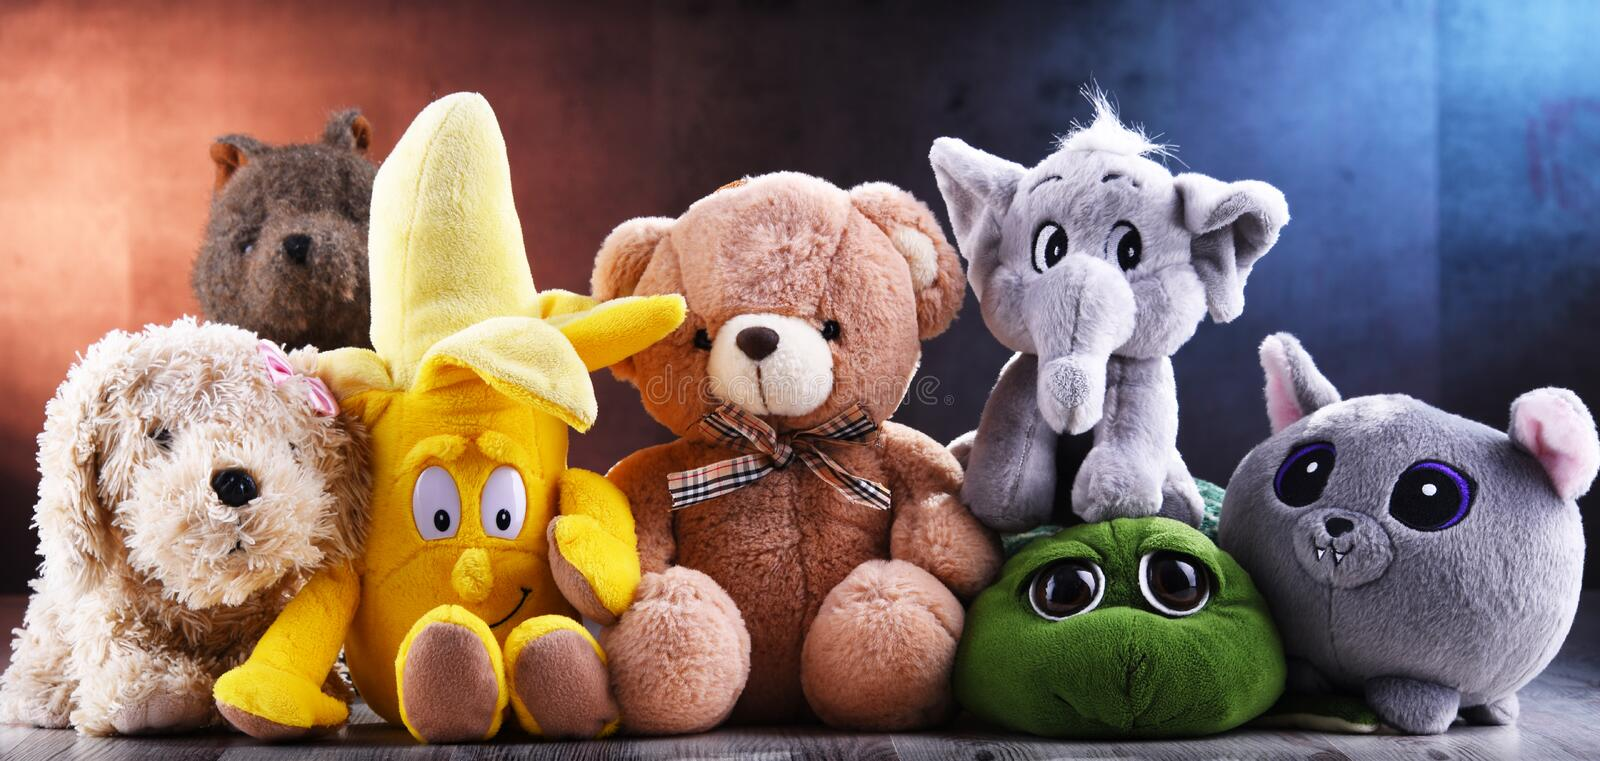 134 Group Cuddly Toys Photos Free Royalty Free Stock Photos From Dreamstime